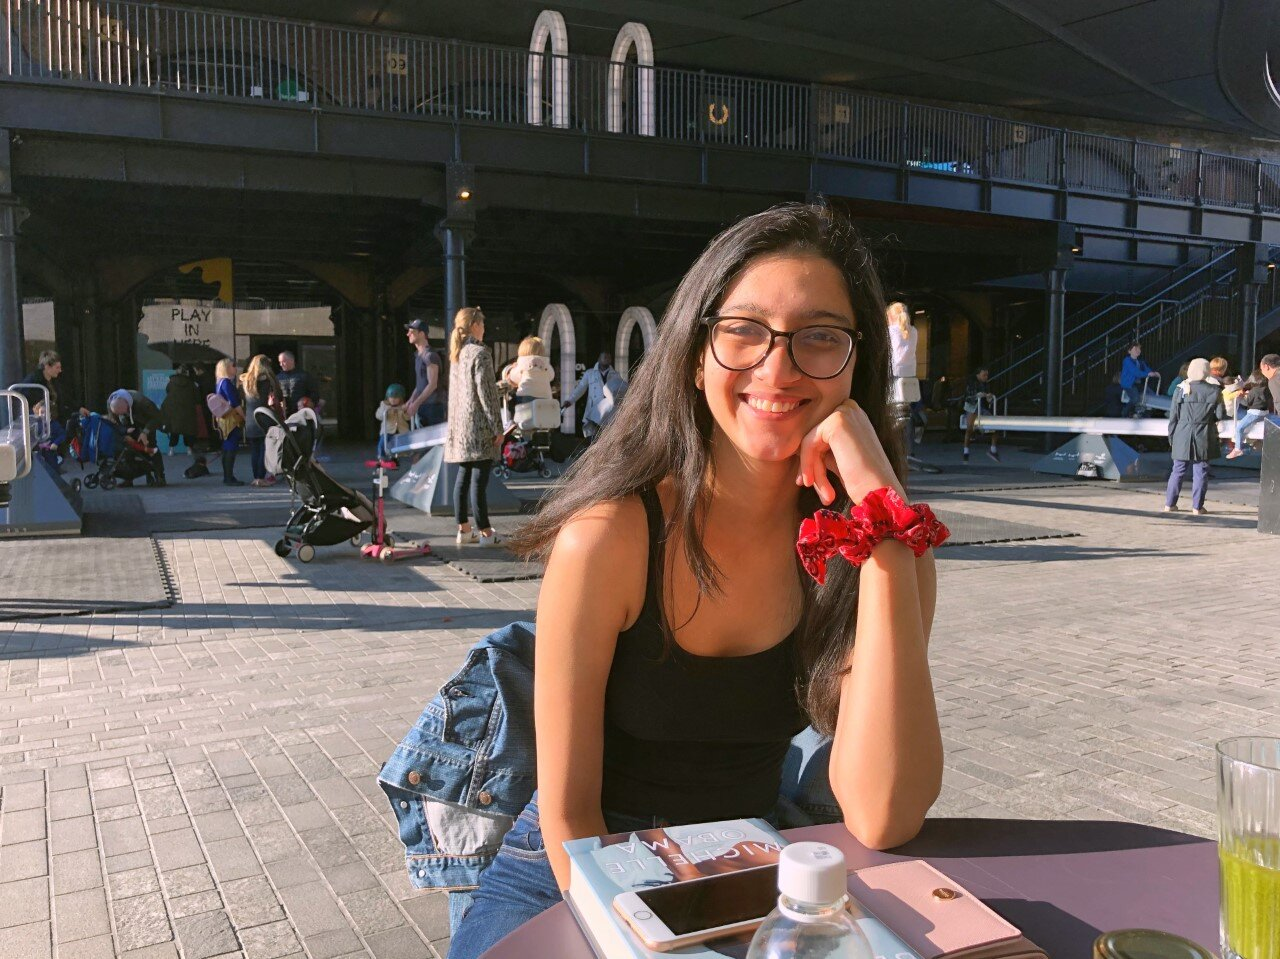 Aashna Bhatia - Writer for We Hate PinkMasters student at London School of Economics, pursuing a degree in Gender, Media and Culture.She is writing about Gender, Media Representation and Trends. Focus on cultural practices across different countries and the psychology behind politics